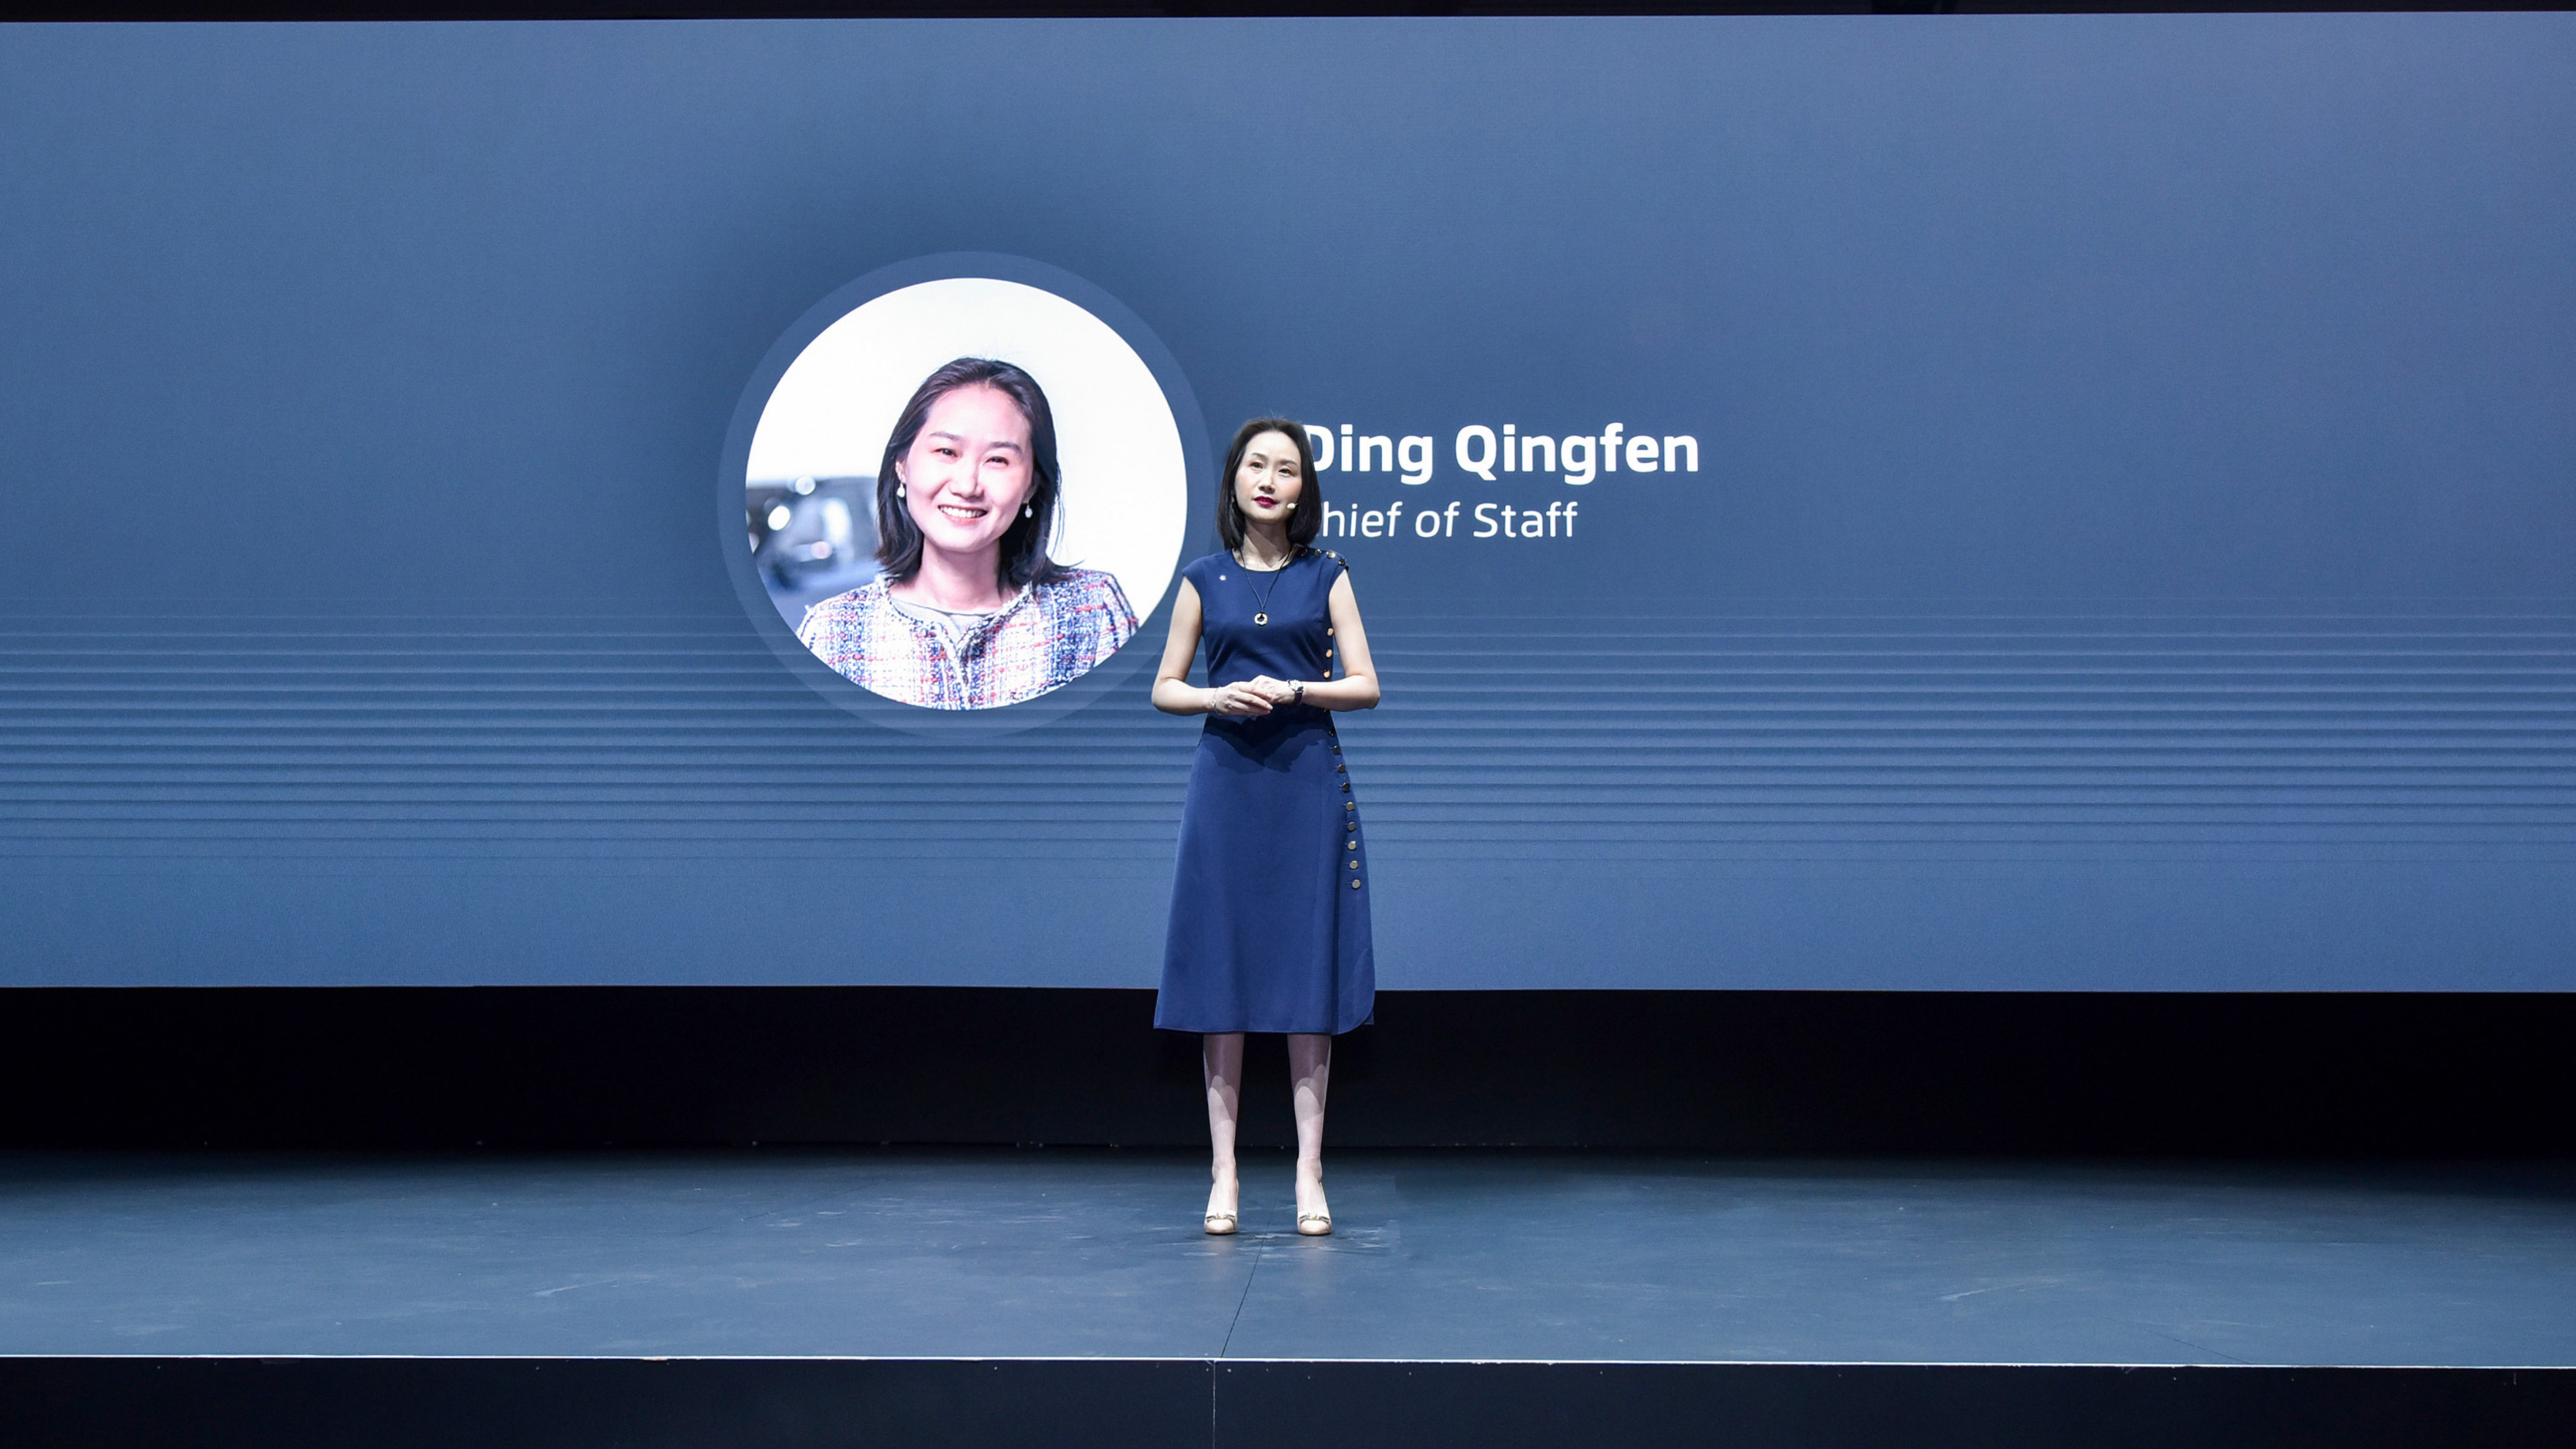 byton ces ding qingfen press conference